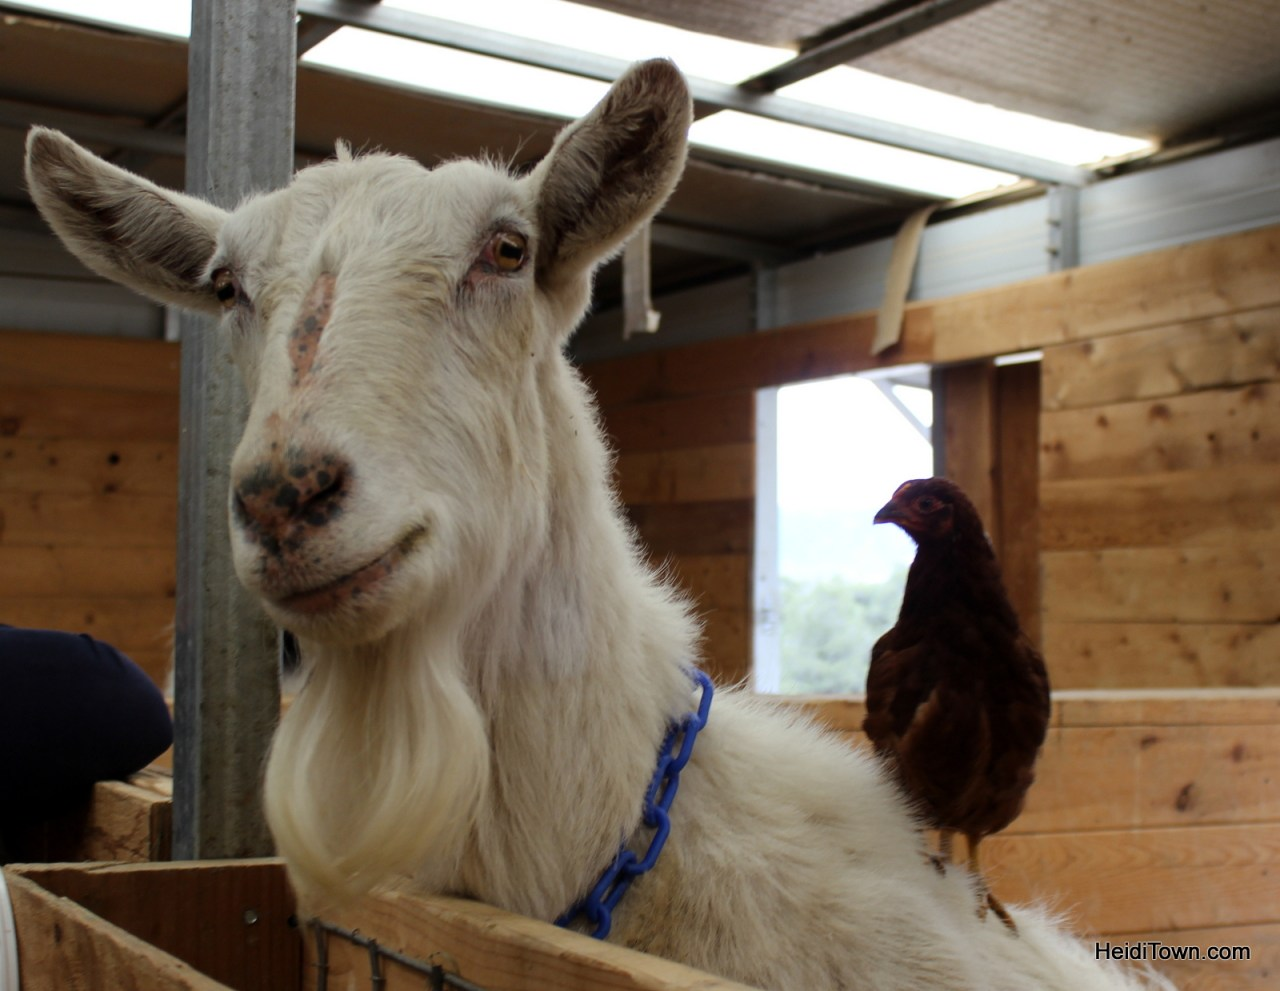 This is a chicken standing on a goat at the Mountain Goat Lodge. HeidiTown.com